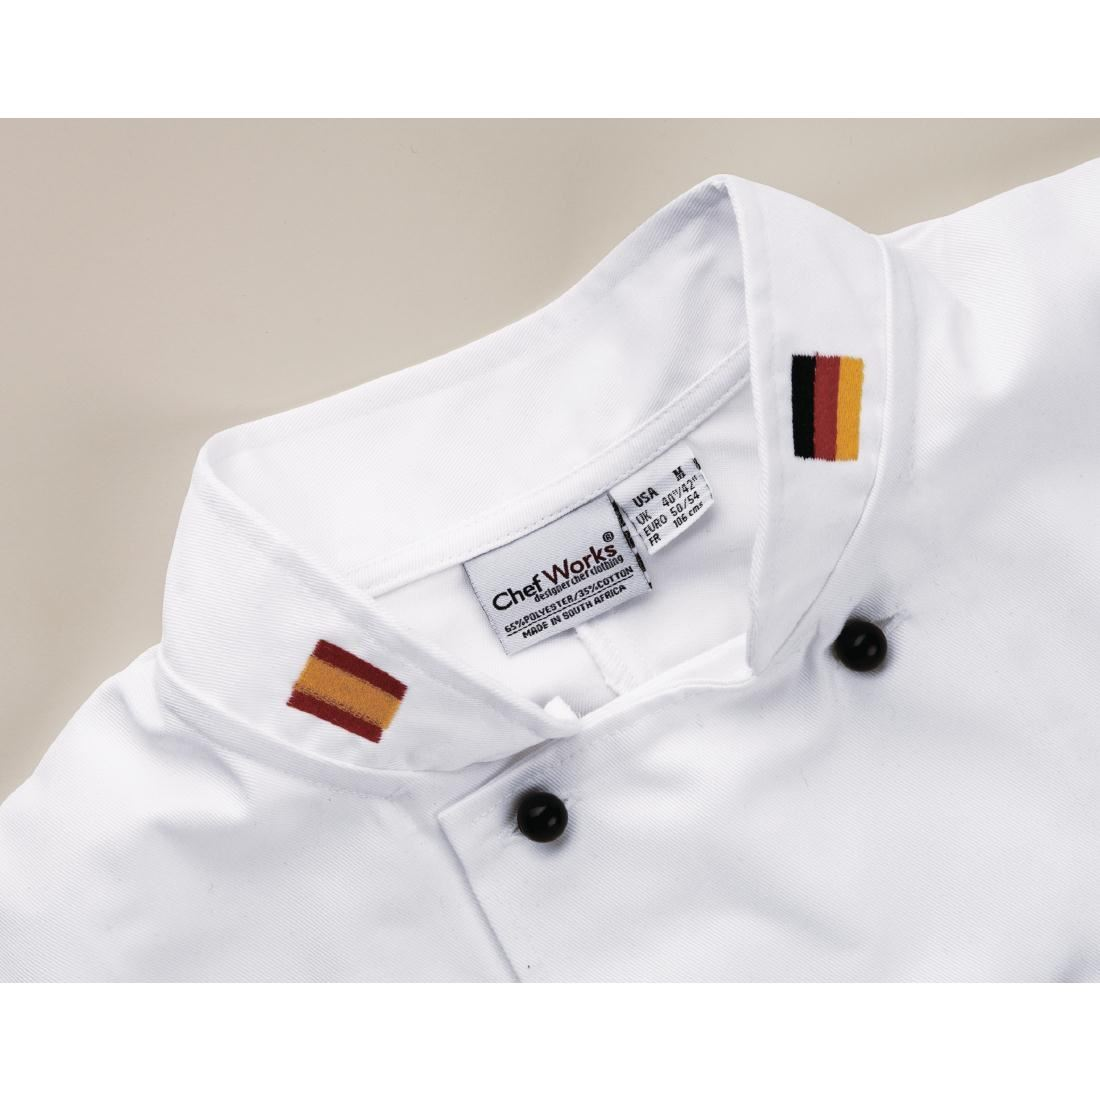 af52fb34 Embroidered Polo Shirts No Minimum Order – EDGE Engineering and ...